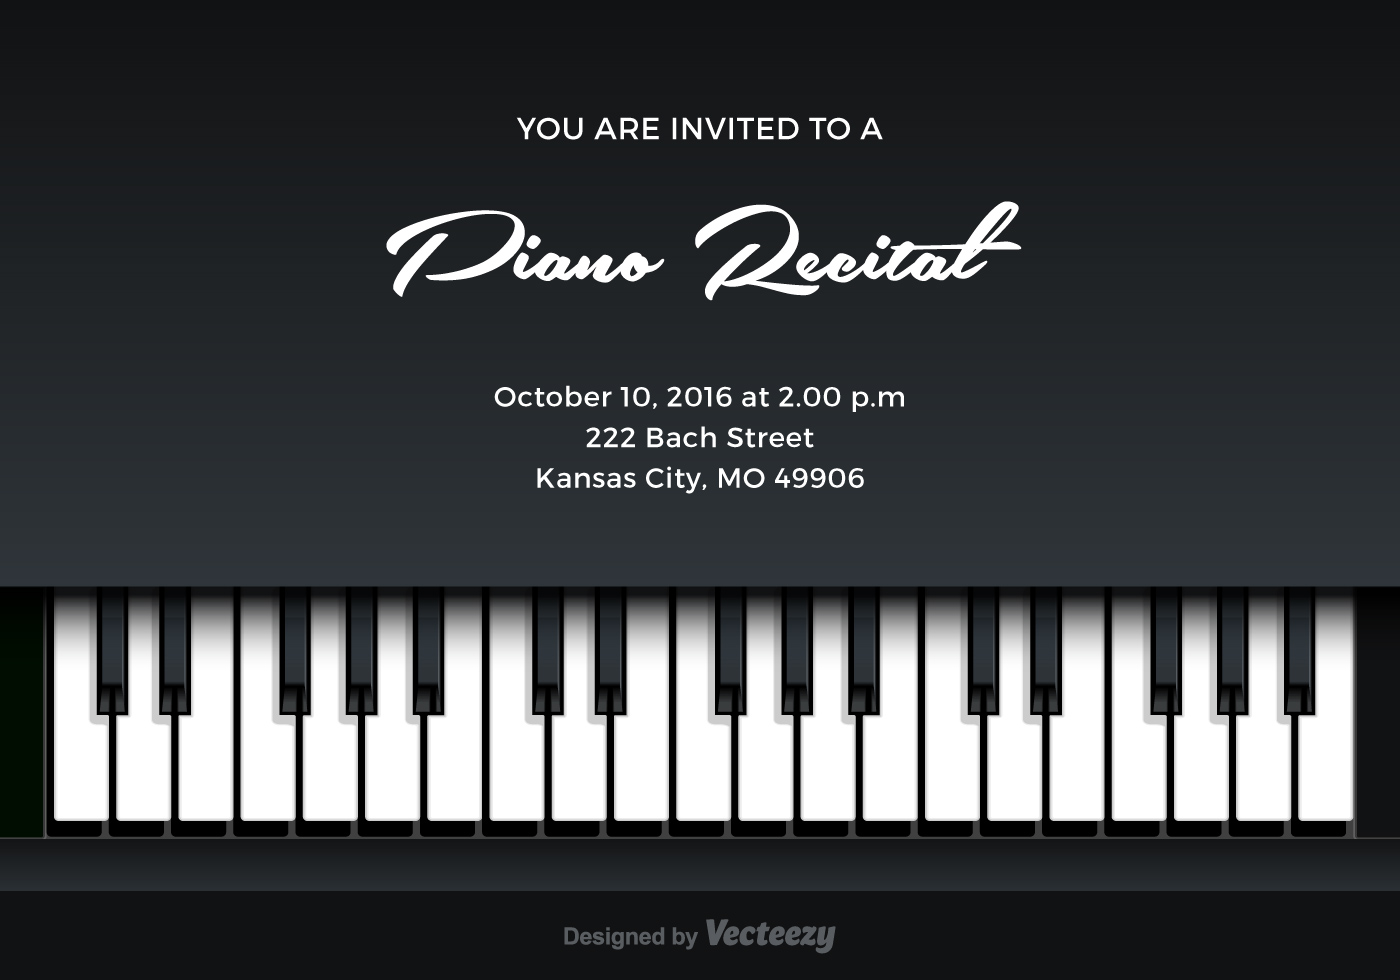 piano recital vector invitation download free vector art stock graphics images. Black Bedroom Furniture Sets. Home Design Ideas